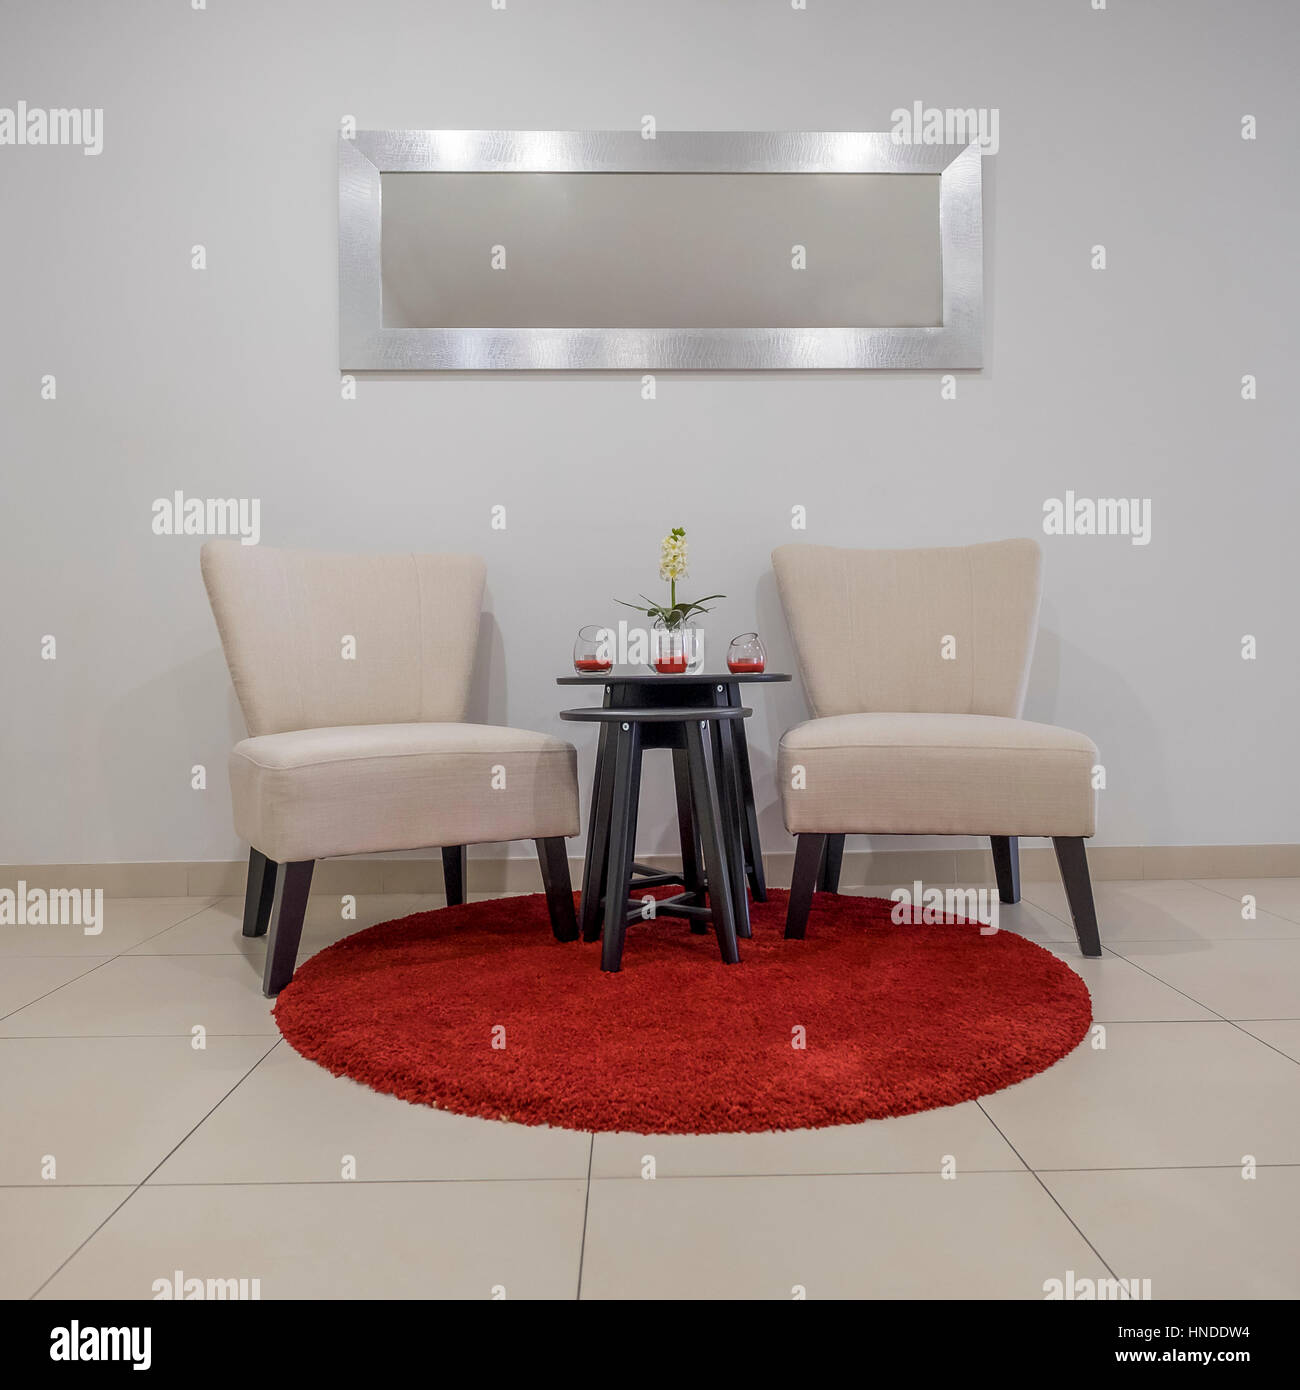 Two Chairs Stand On A Round Red Carpet Mat Above A Mirror And A Small Table  With Decoration